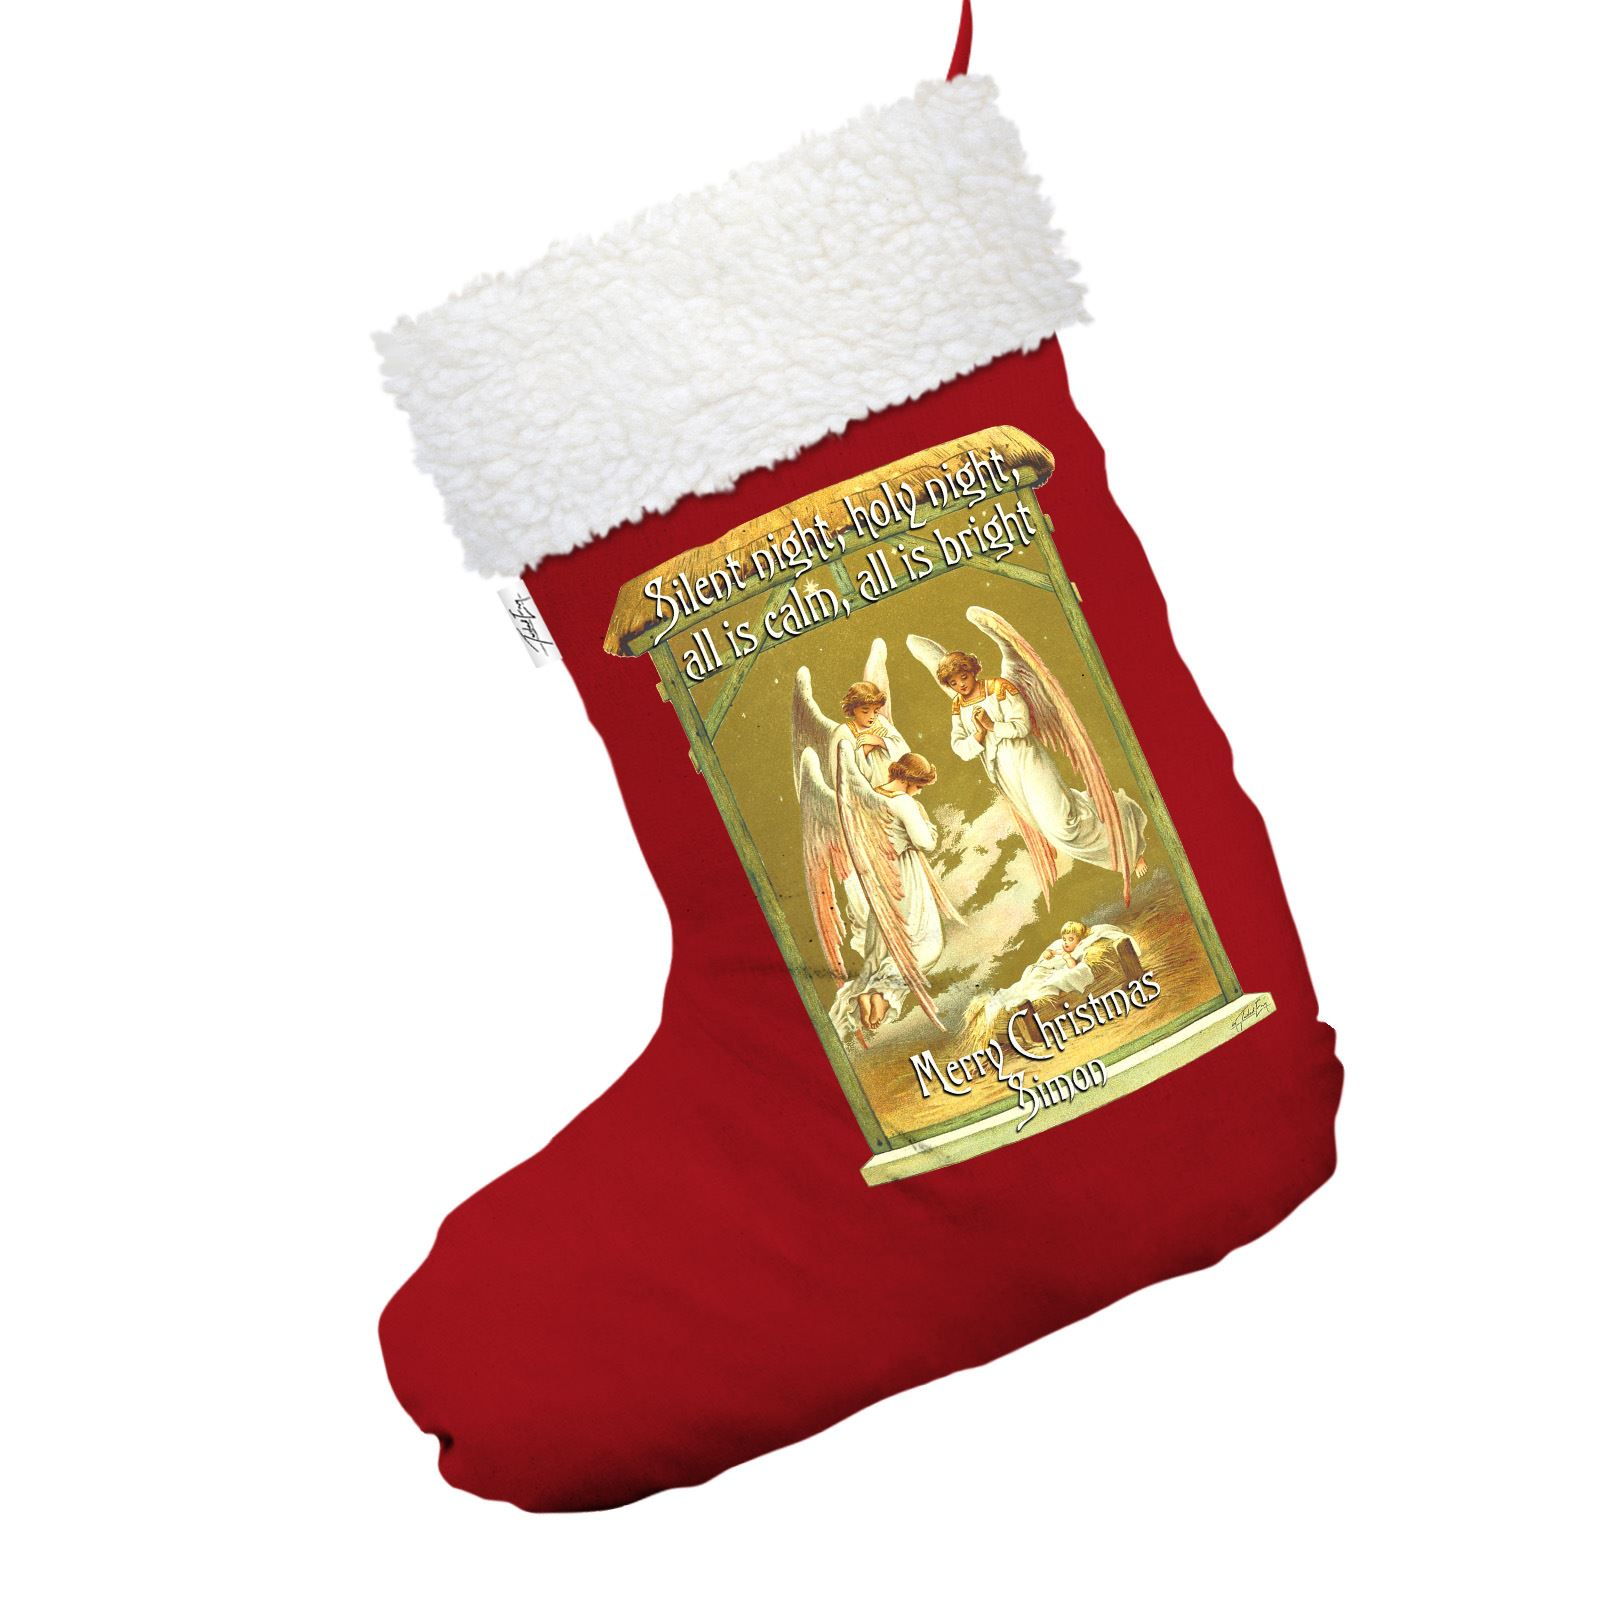 Victorian Christmas Stockings.Details About Victorian Christmas Angels Personalised Red Christmas Stocking With White Trim